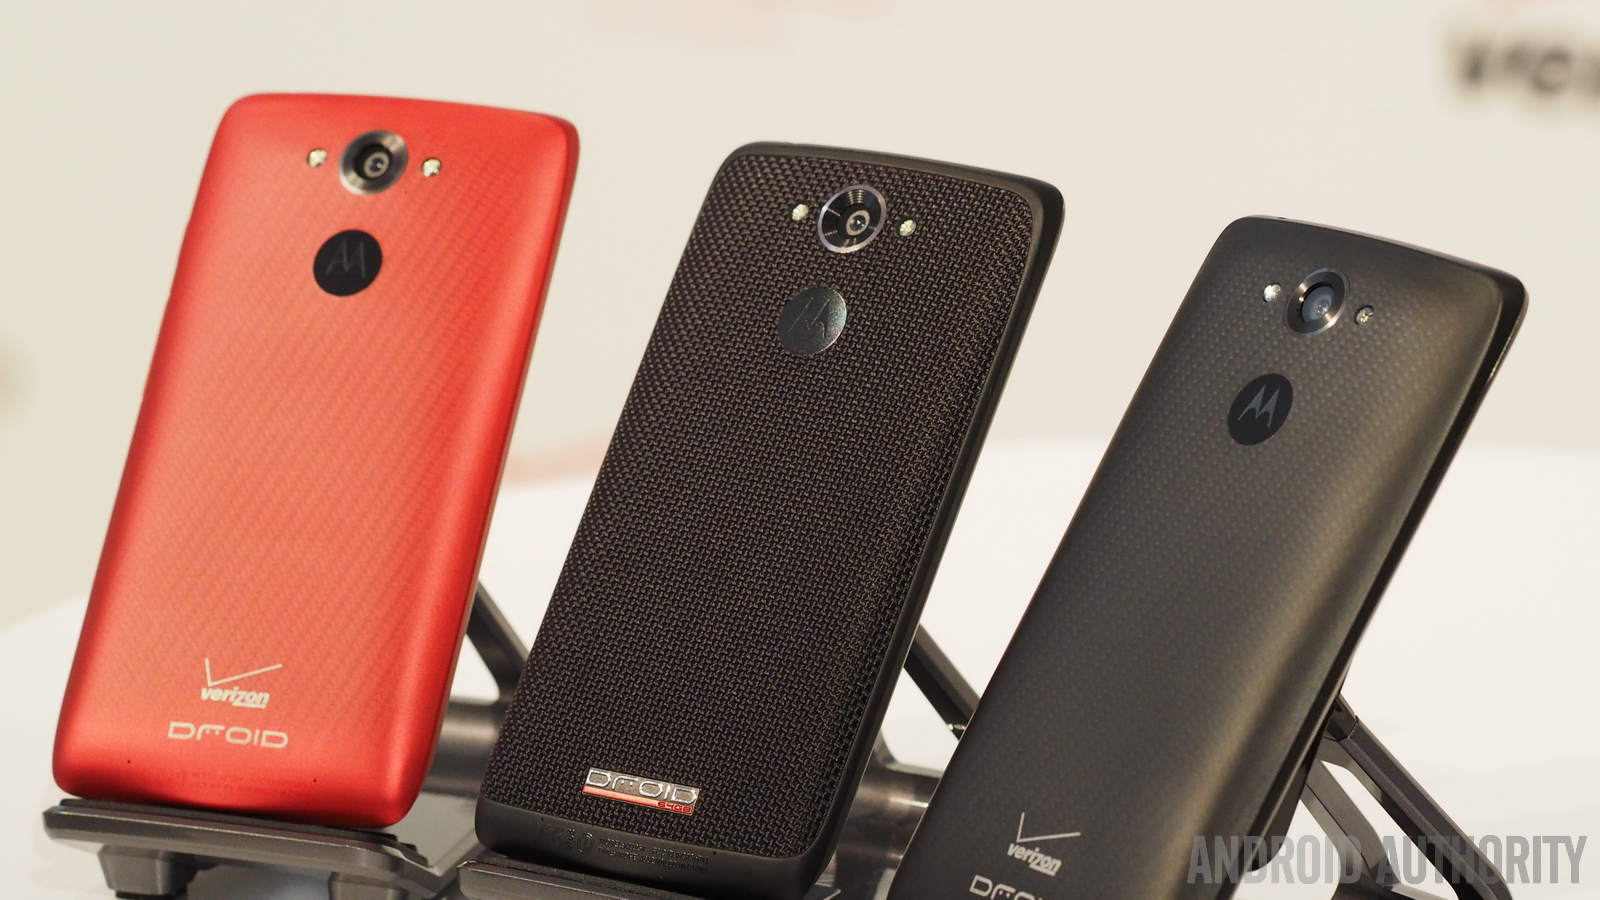 Motorola droid turbo in pictures